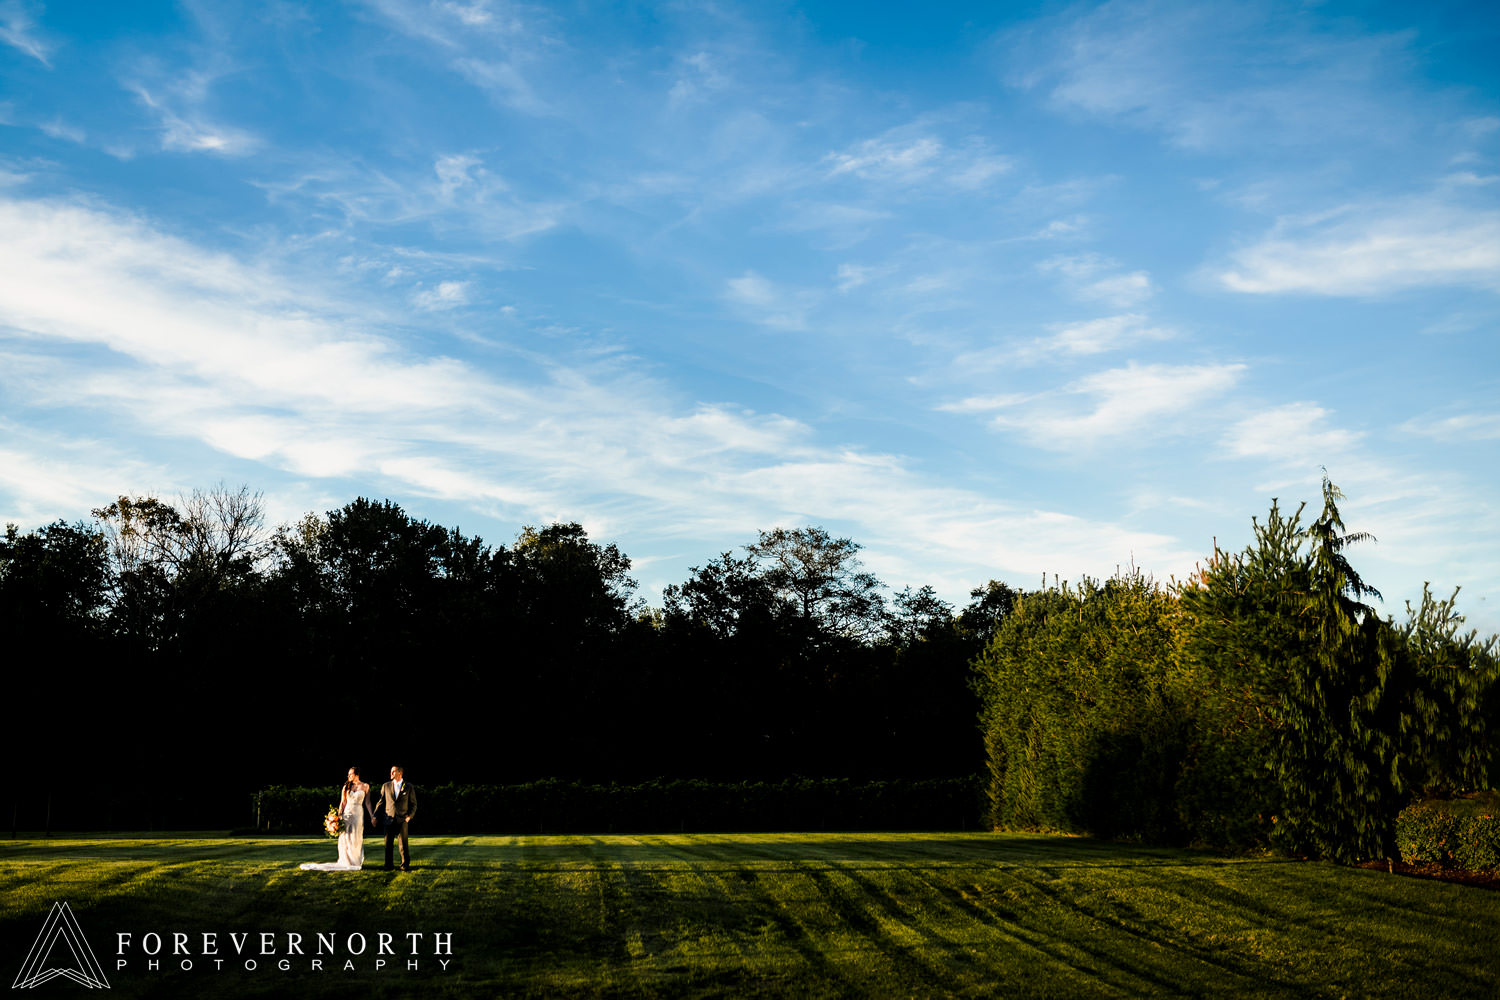 Mendyk-Valenzano-Family-Winery-NJ-Wedding-Photographer-24.JPG